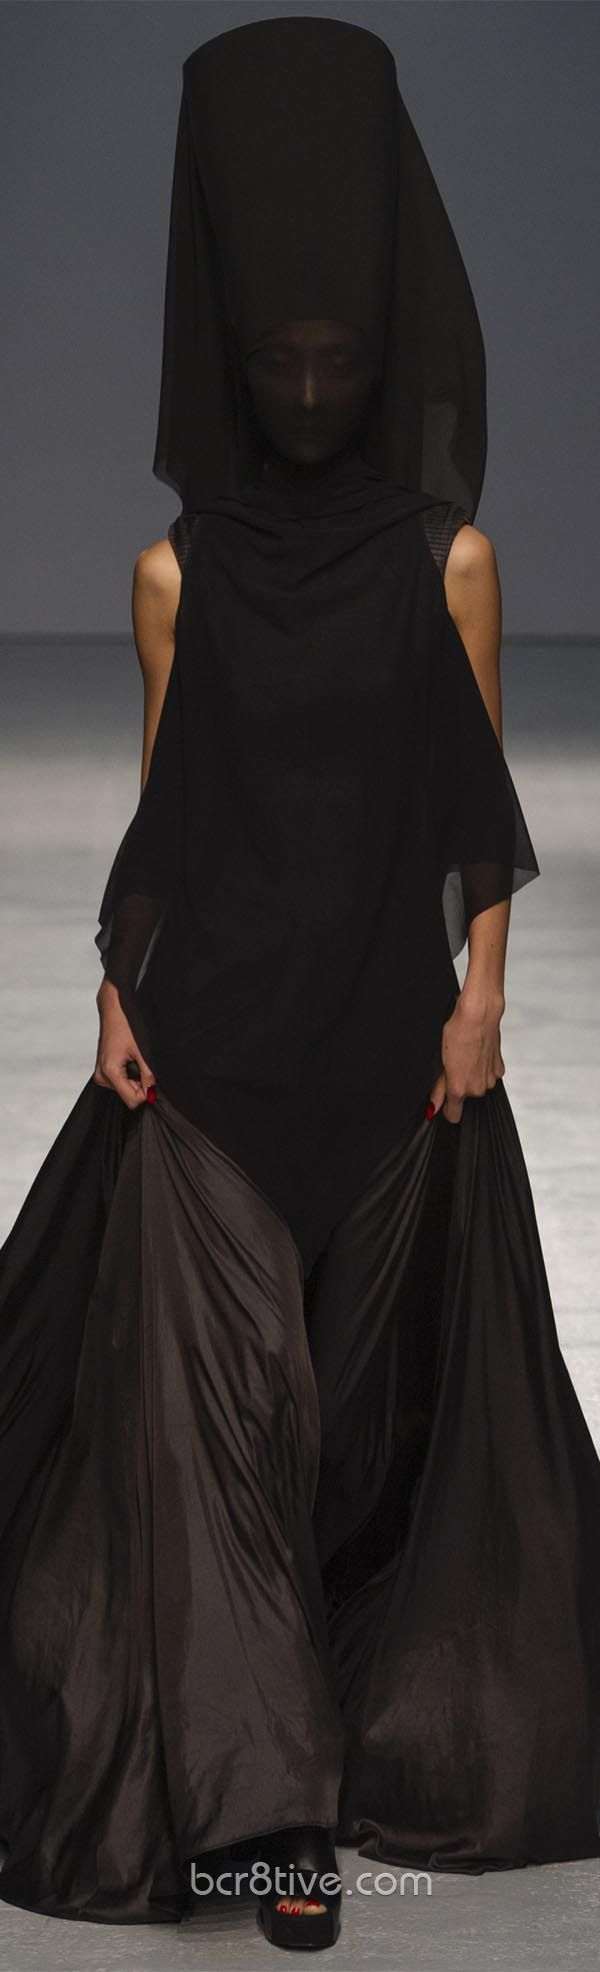 Gareth Pugh Spring Summer 2013 Ready To Wear Collection  I'd wear the dress, it's beautiful